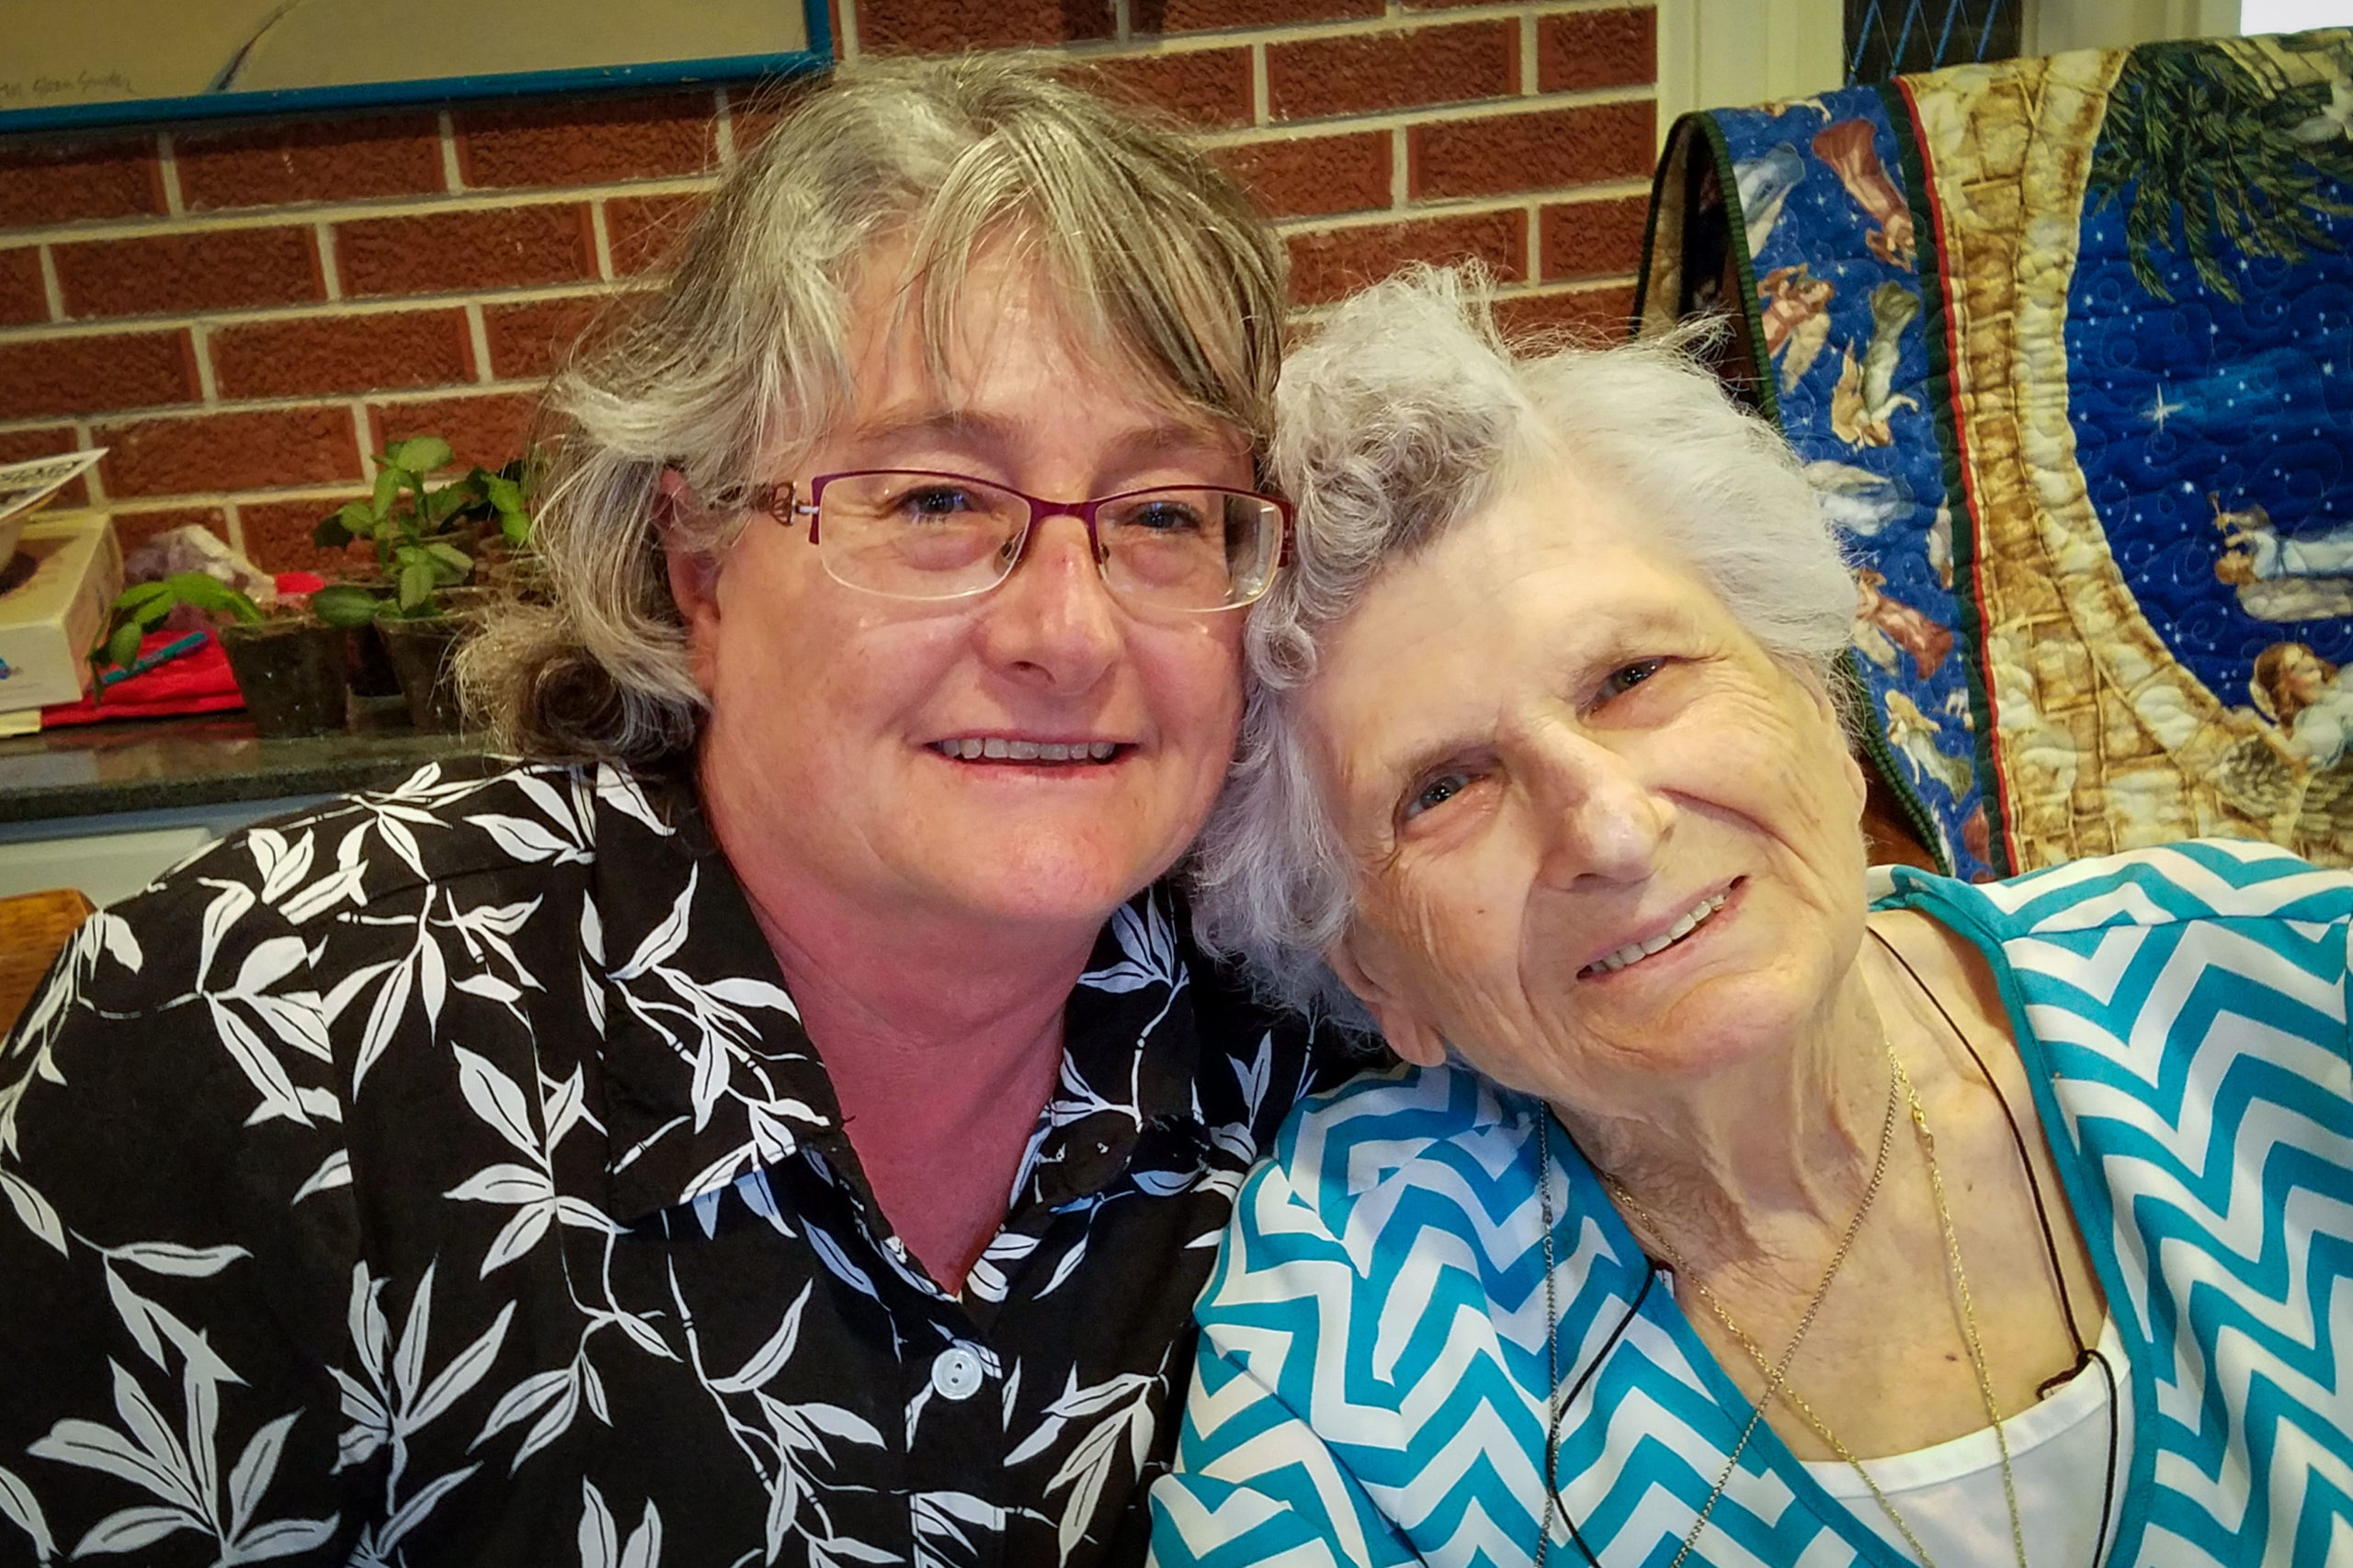 Janice Paulter's sister, Patty Jones, who is a nurse at Yuma County Hospital now, and her mother Serena Simon Best.